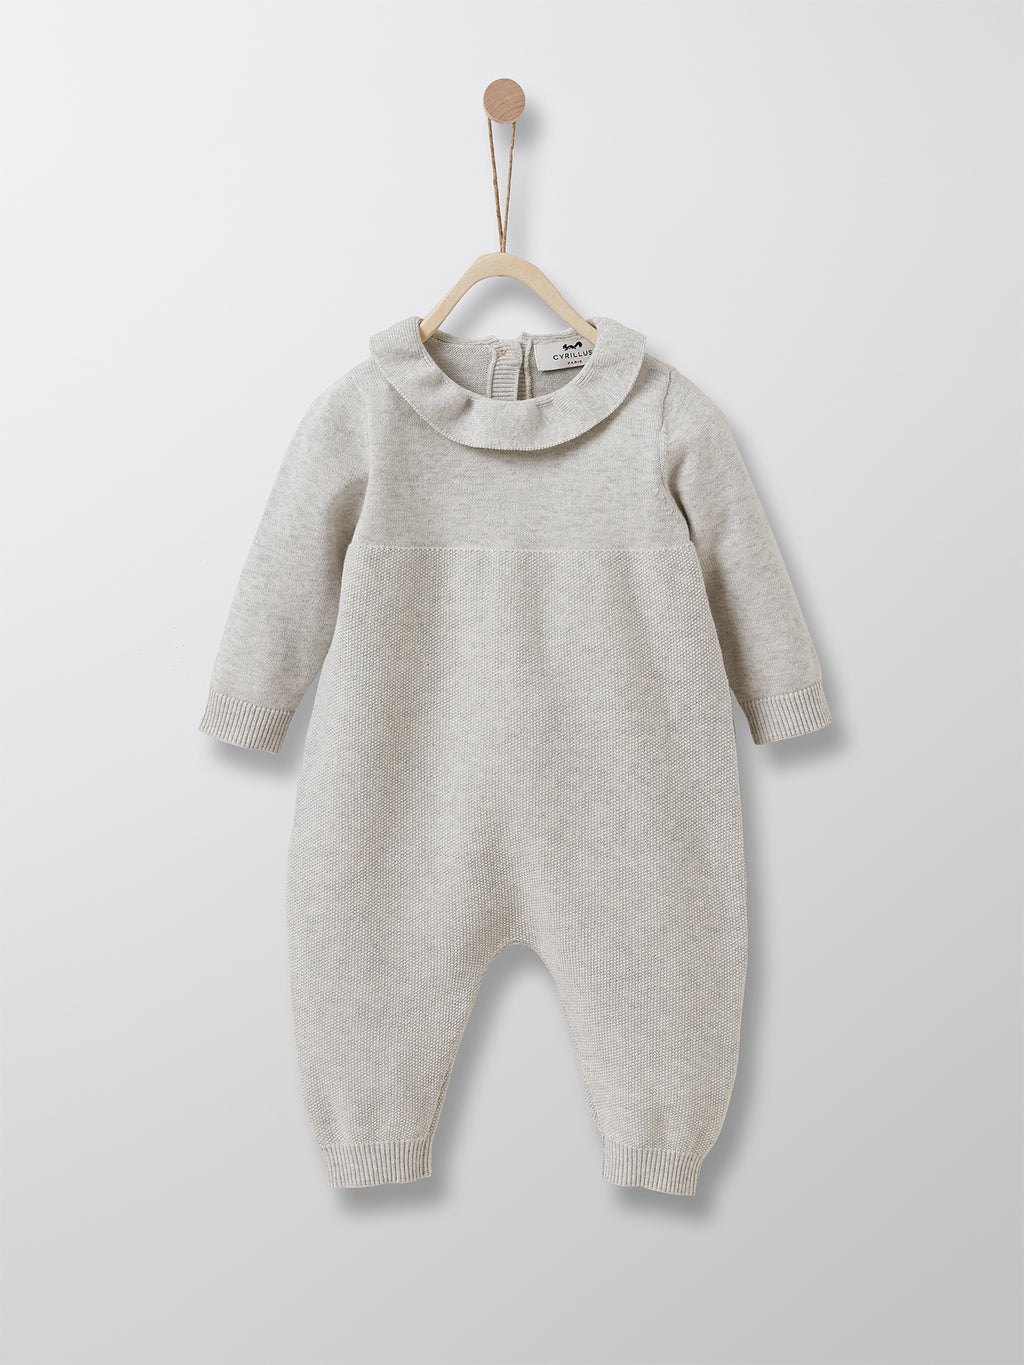 Cyrillus Paris | Jumpsuit with Frill Collar | Cotton + Cashmere | Light Grey | 1M, 3M